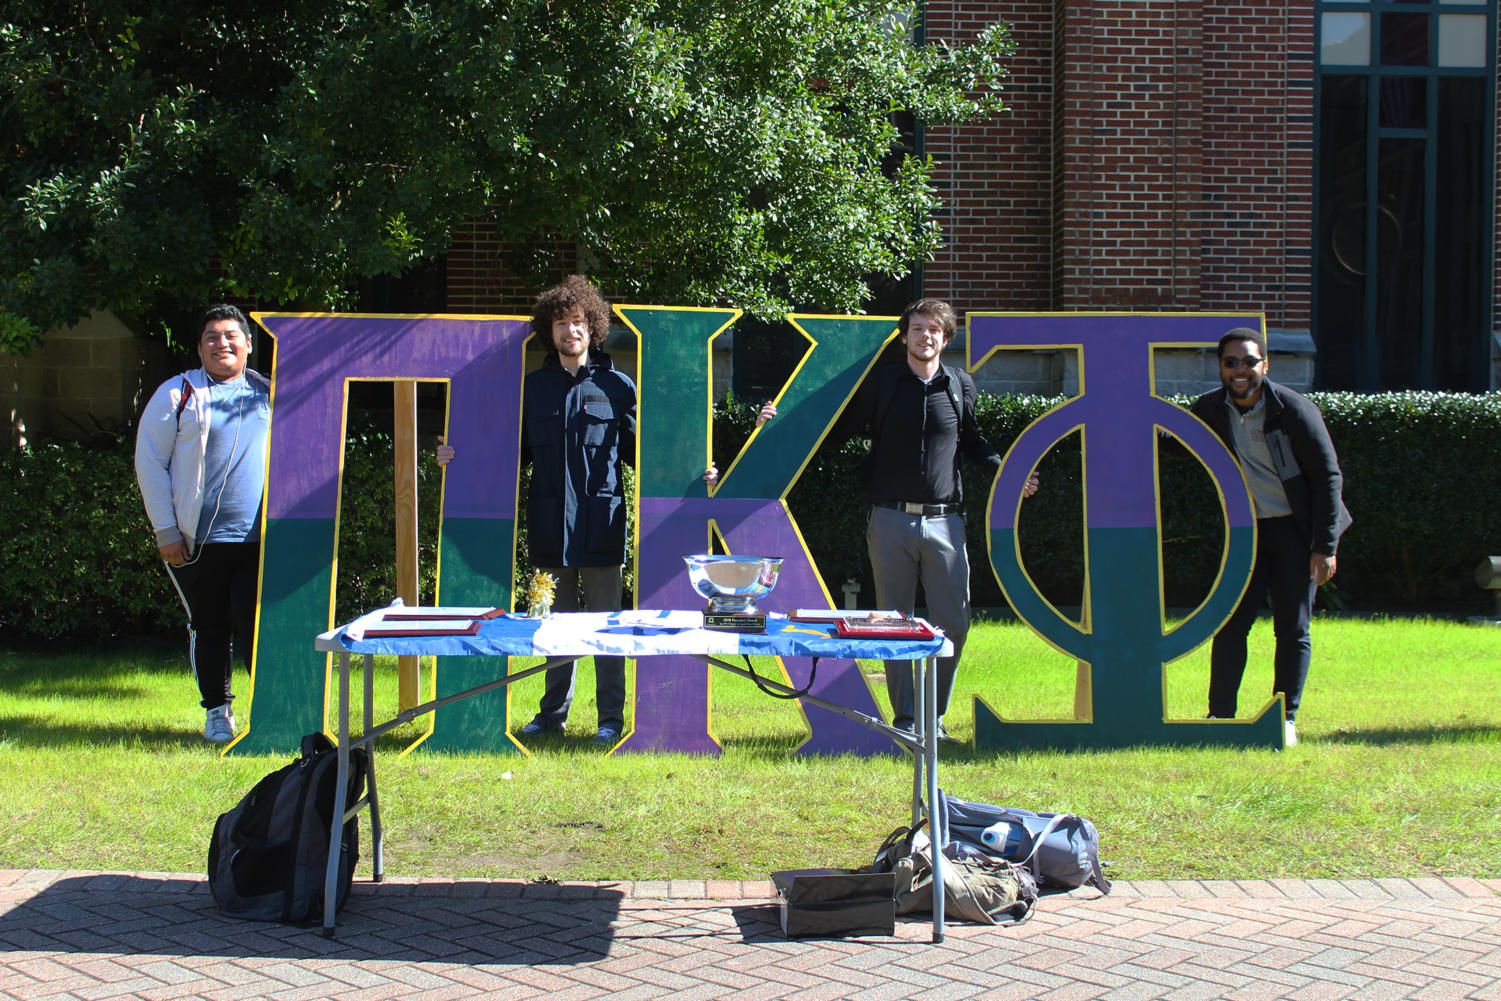 Joseph Sabados, Spencer Stingley, Hunter Cobb, Isaiah Jones (from left to right), brothers of Pi Kappa Phi, are tabling during recruitment week. Photo credit: Cristian Orellana